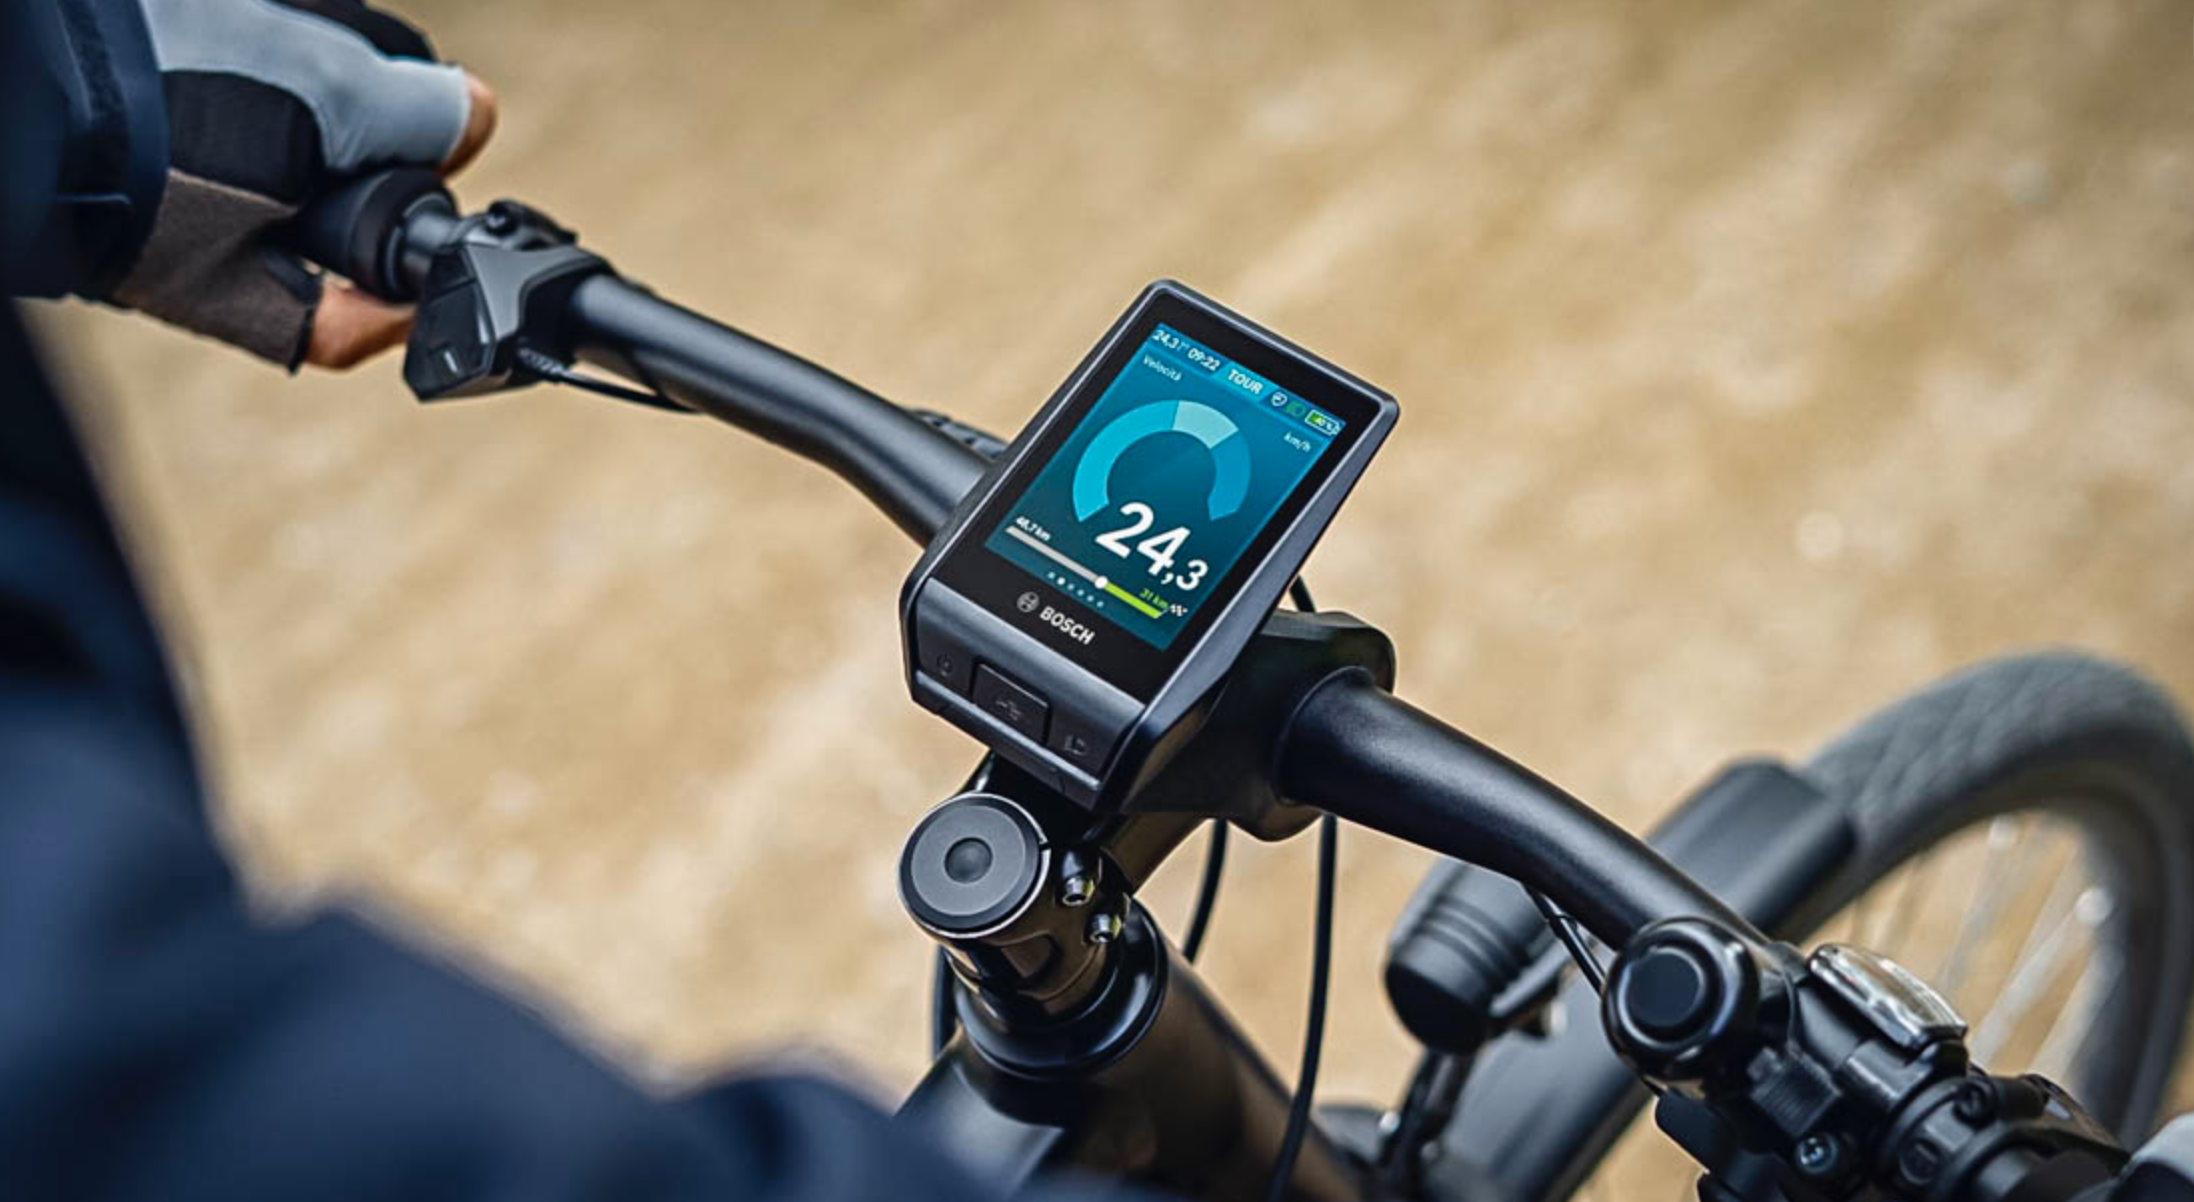 Bosch E-Bike Nyon, al computer da bici l'Innovation Award CES 2021